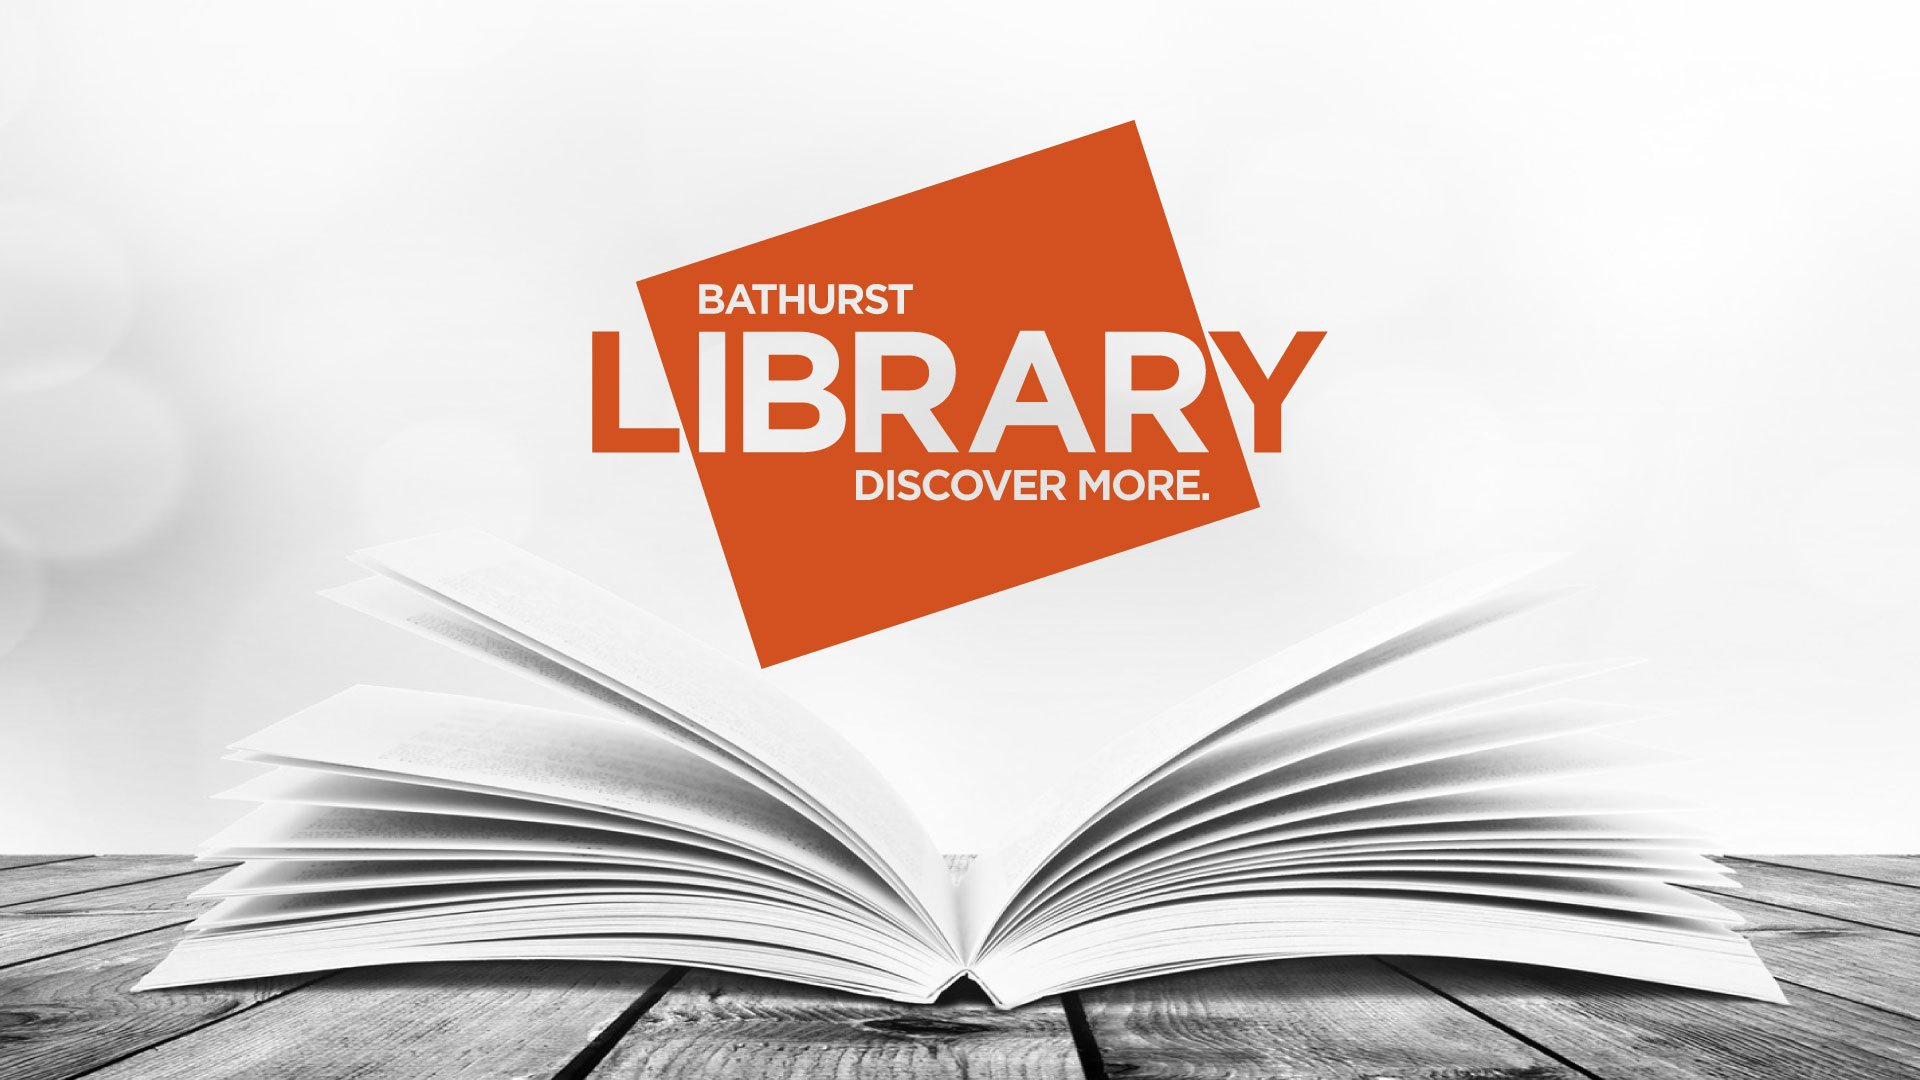 Portfolio - Bathurst Library Logo | StartleArt Graphic Design